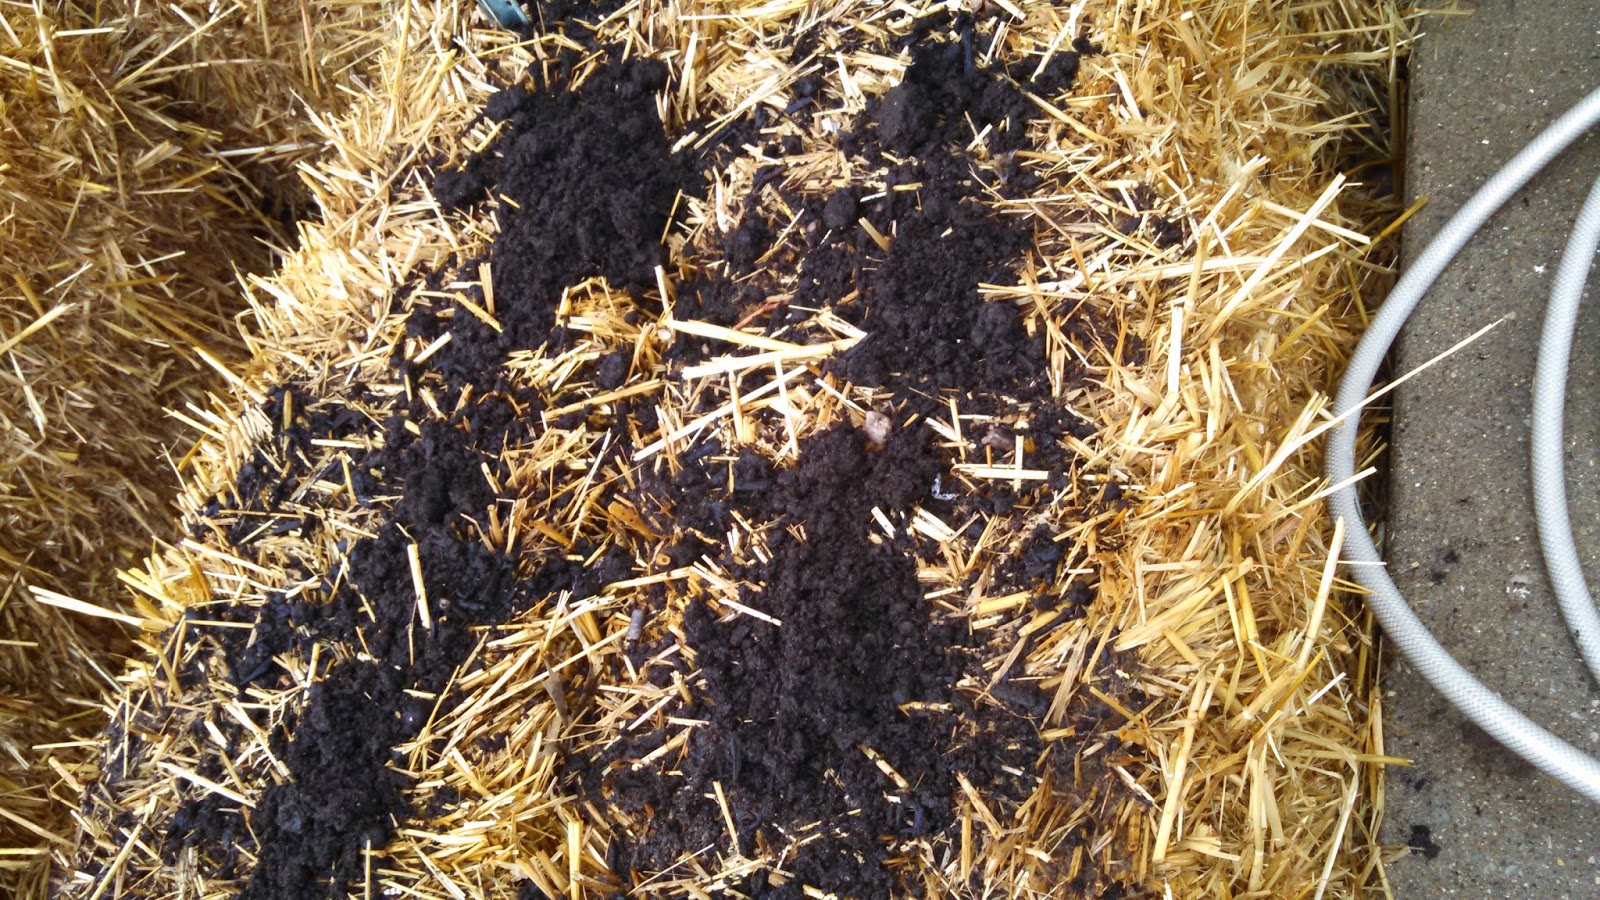 Day 5 of Straw Bale Conditioning, with Fertilizer Added